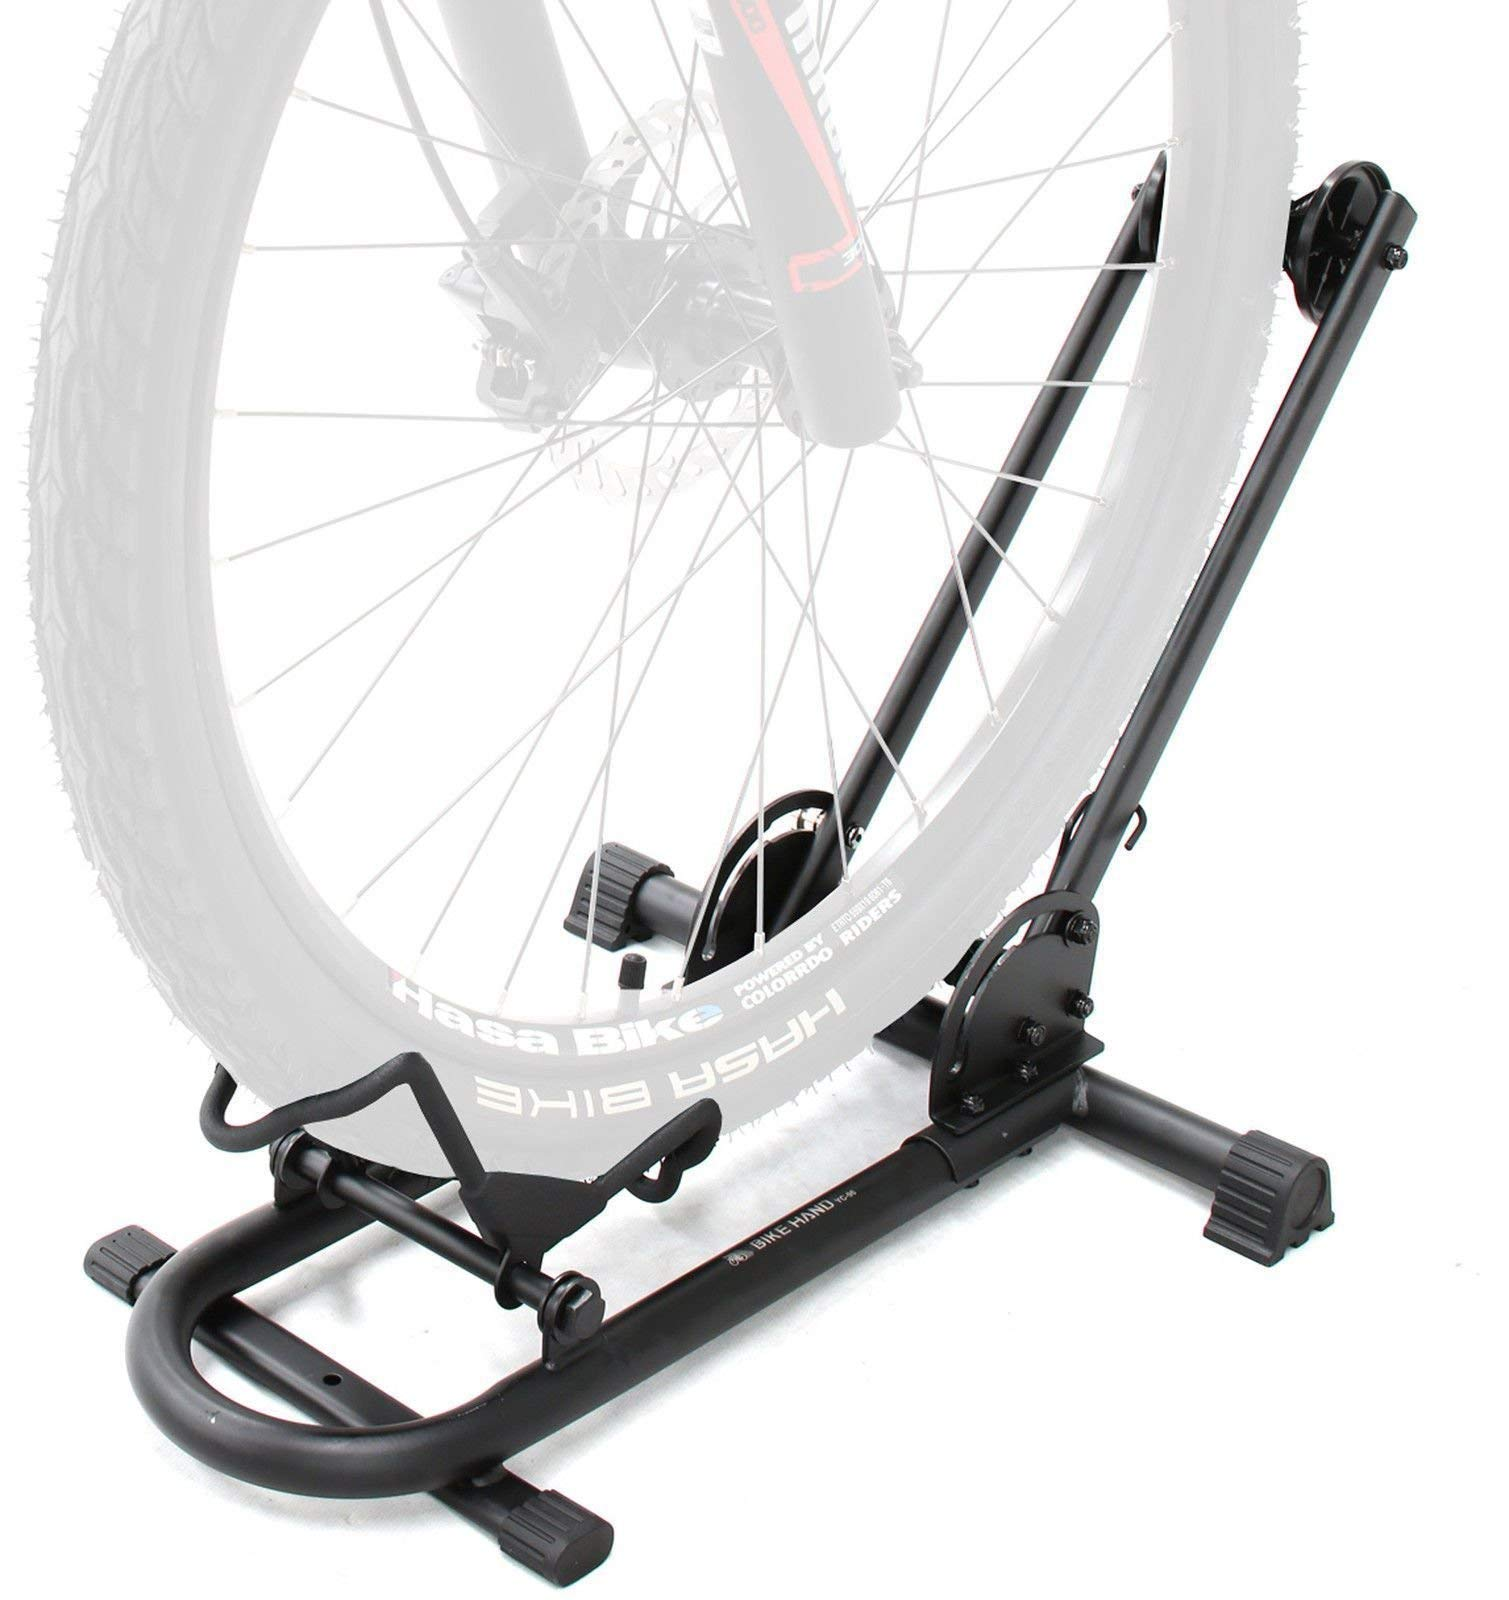 Bikehand Bike Floor Parking Rack Storage Stand Bicycle (Renewed)